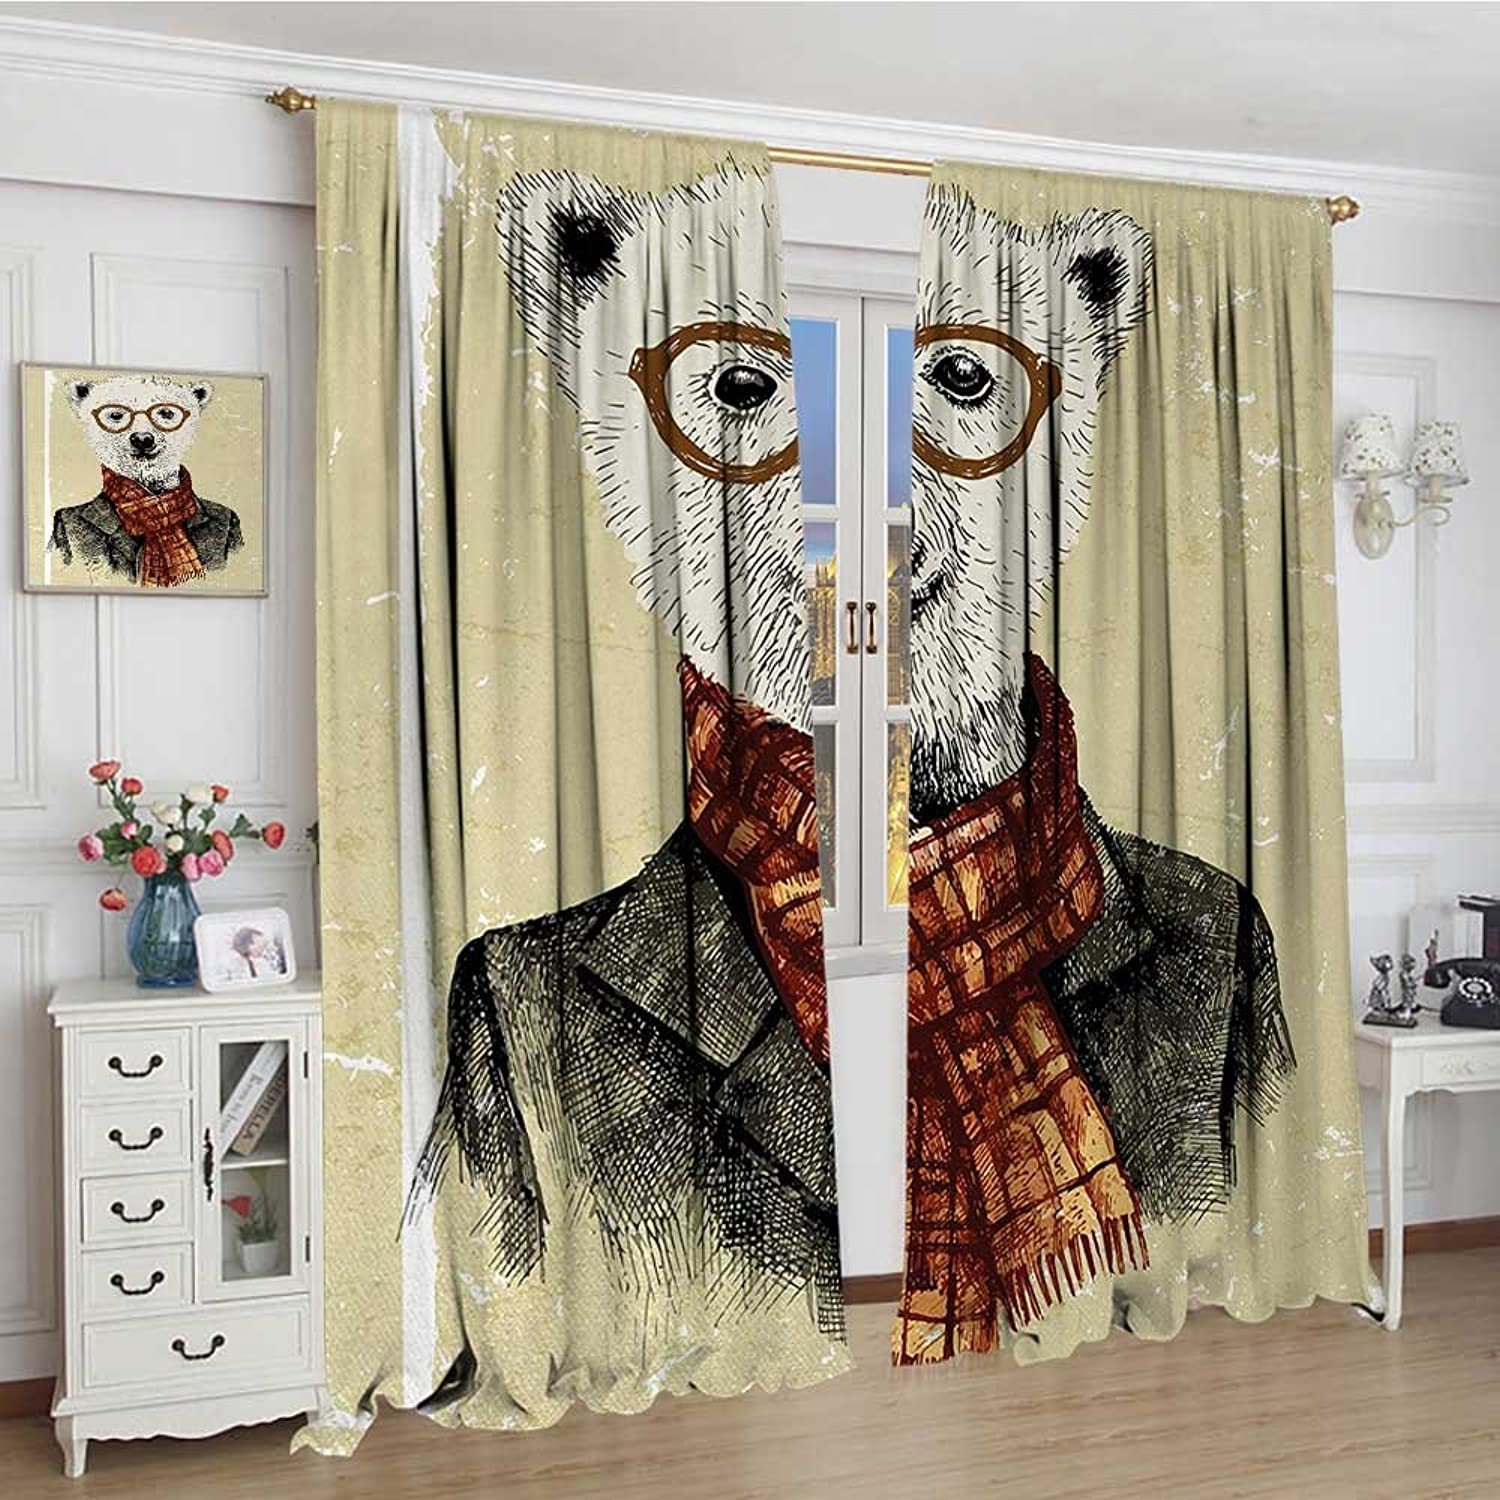 Animal Widened Room Darkening Curtains Hipster Bear with Glasses Scarf Jacket Wild Mammal Humgoldus Artwork Drapes for Living Room 120 x84  Cream Dark orange Black